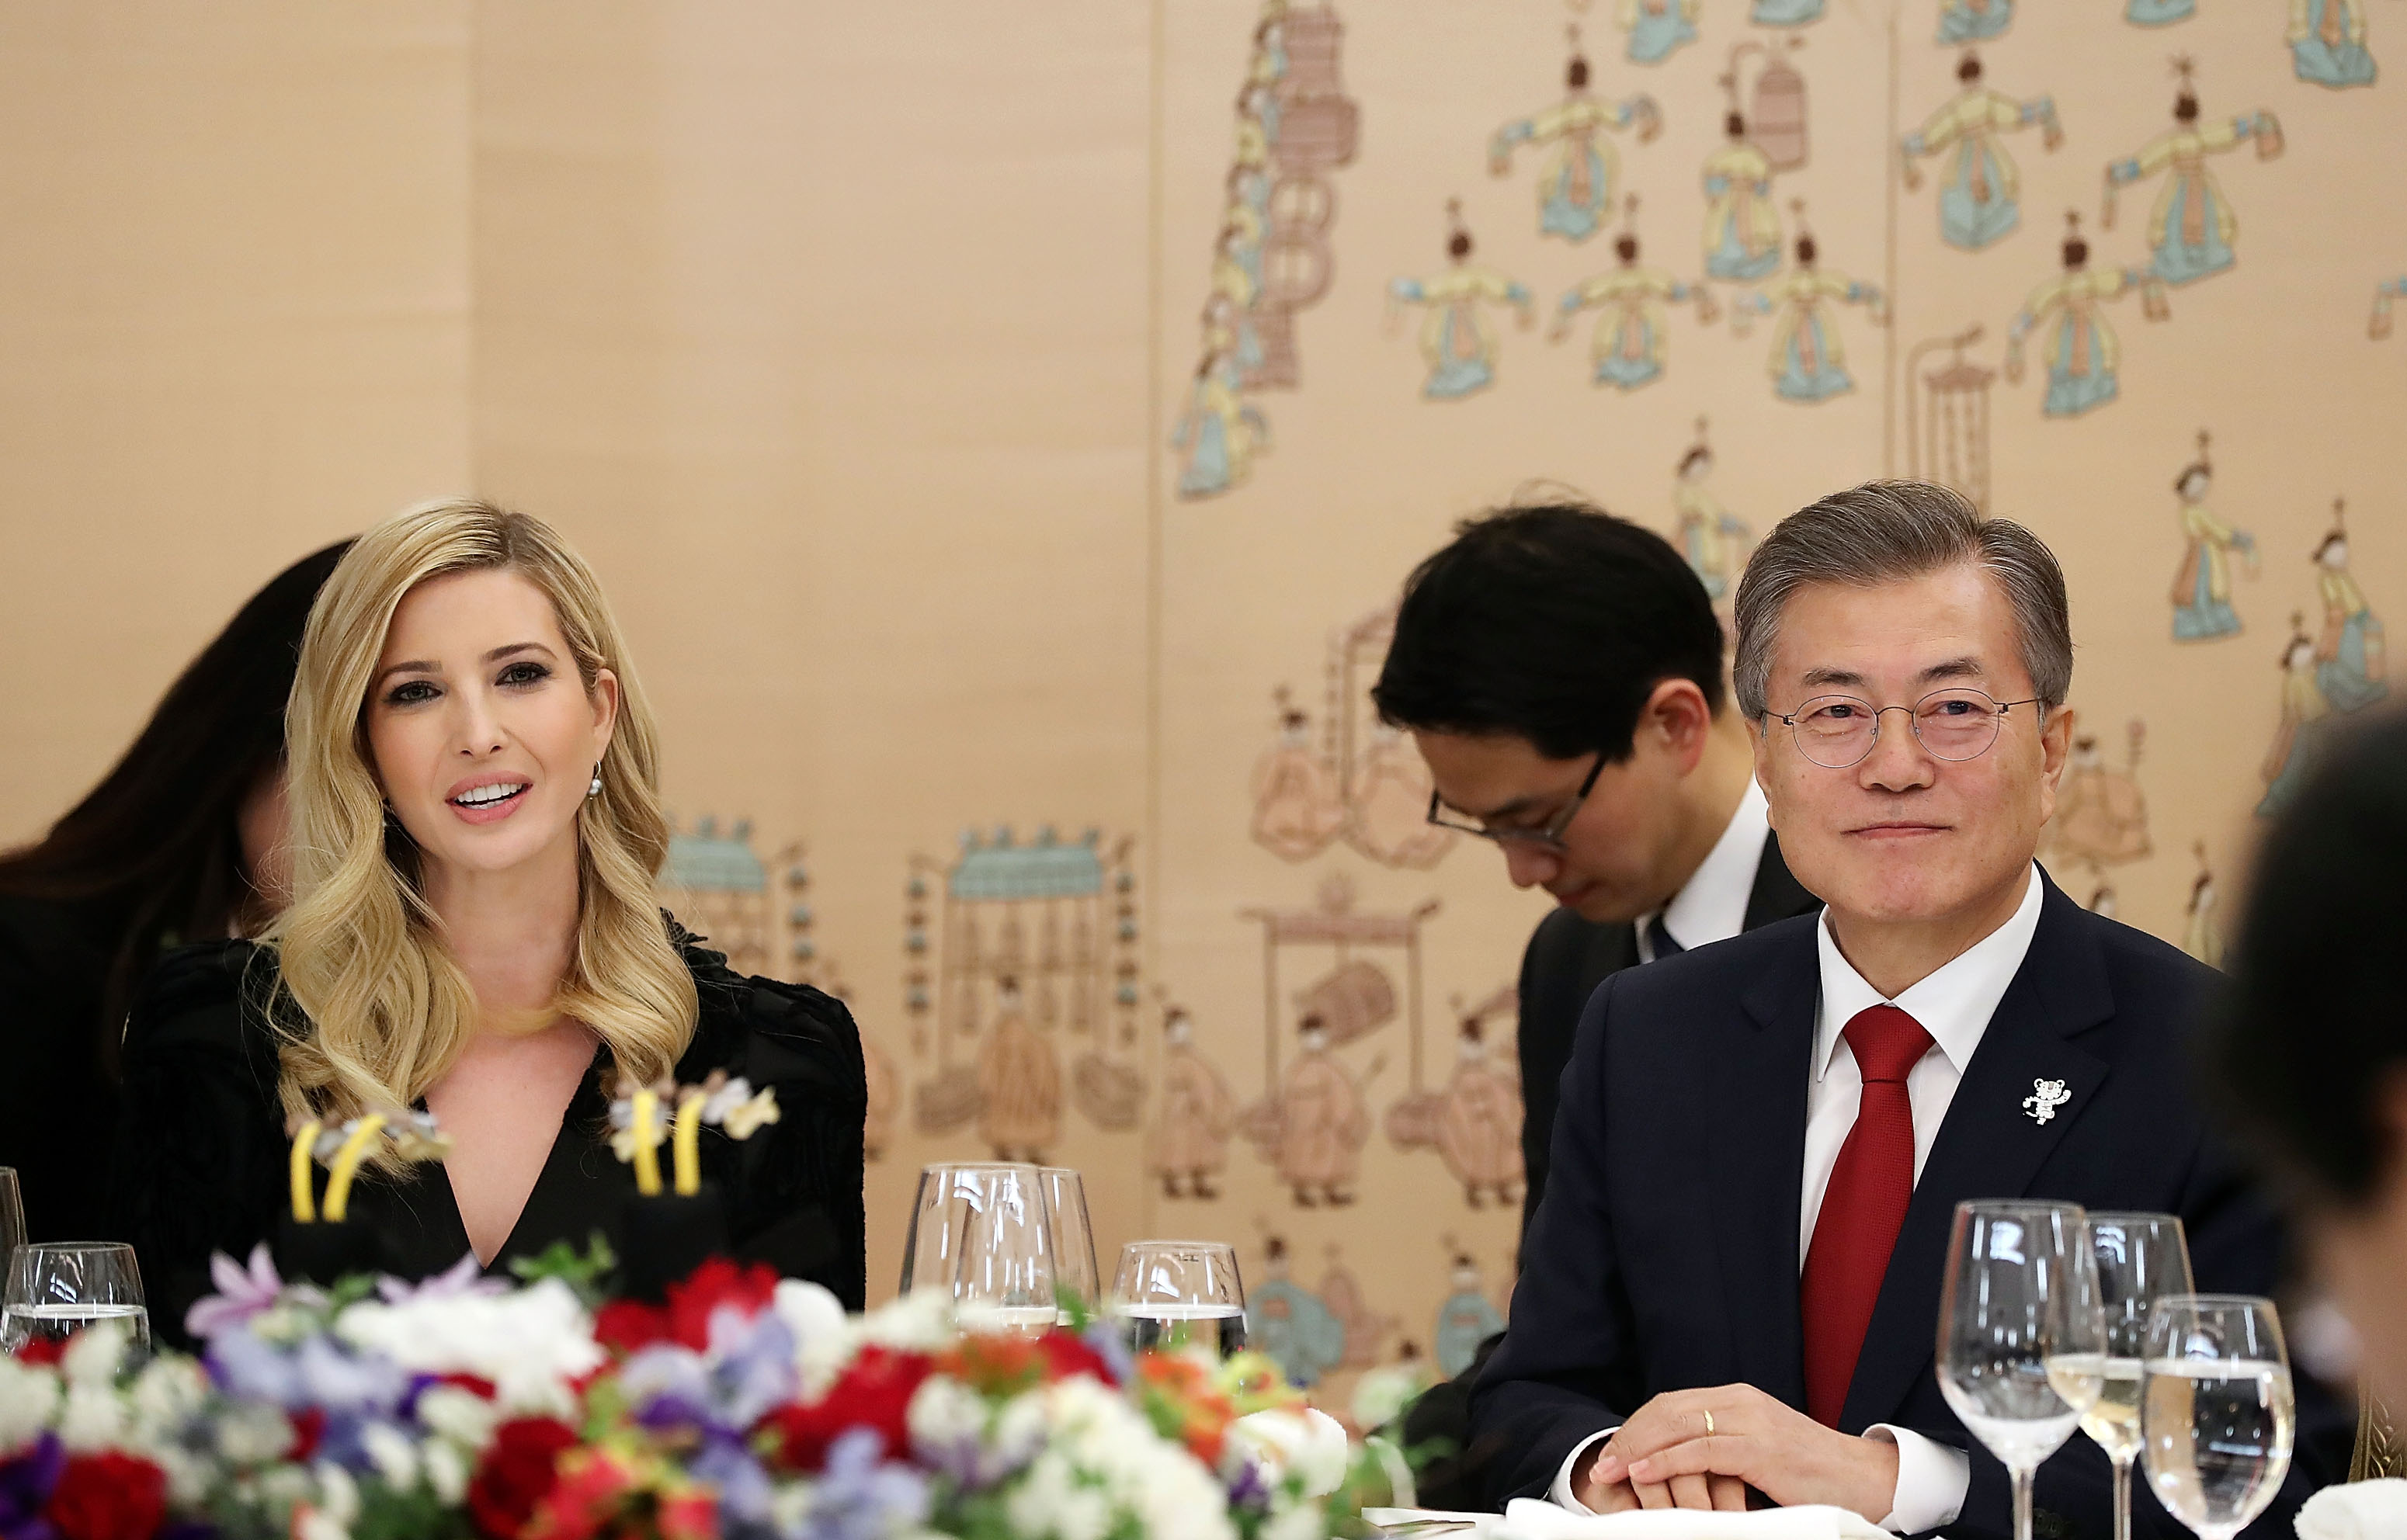 In this handout image provided by the South Korean Presidential Blue House, South Korean President Moon Jae-In (R) talks with Ivanka Trump (L) during their dinner at the Presidential Blue House on February 23, 2018 in Seoul, South Korea